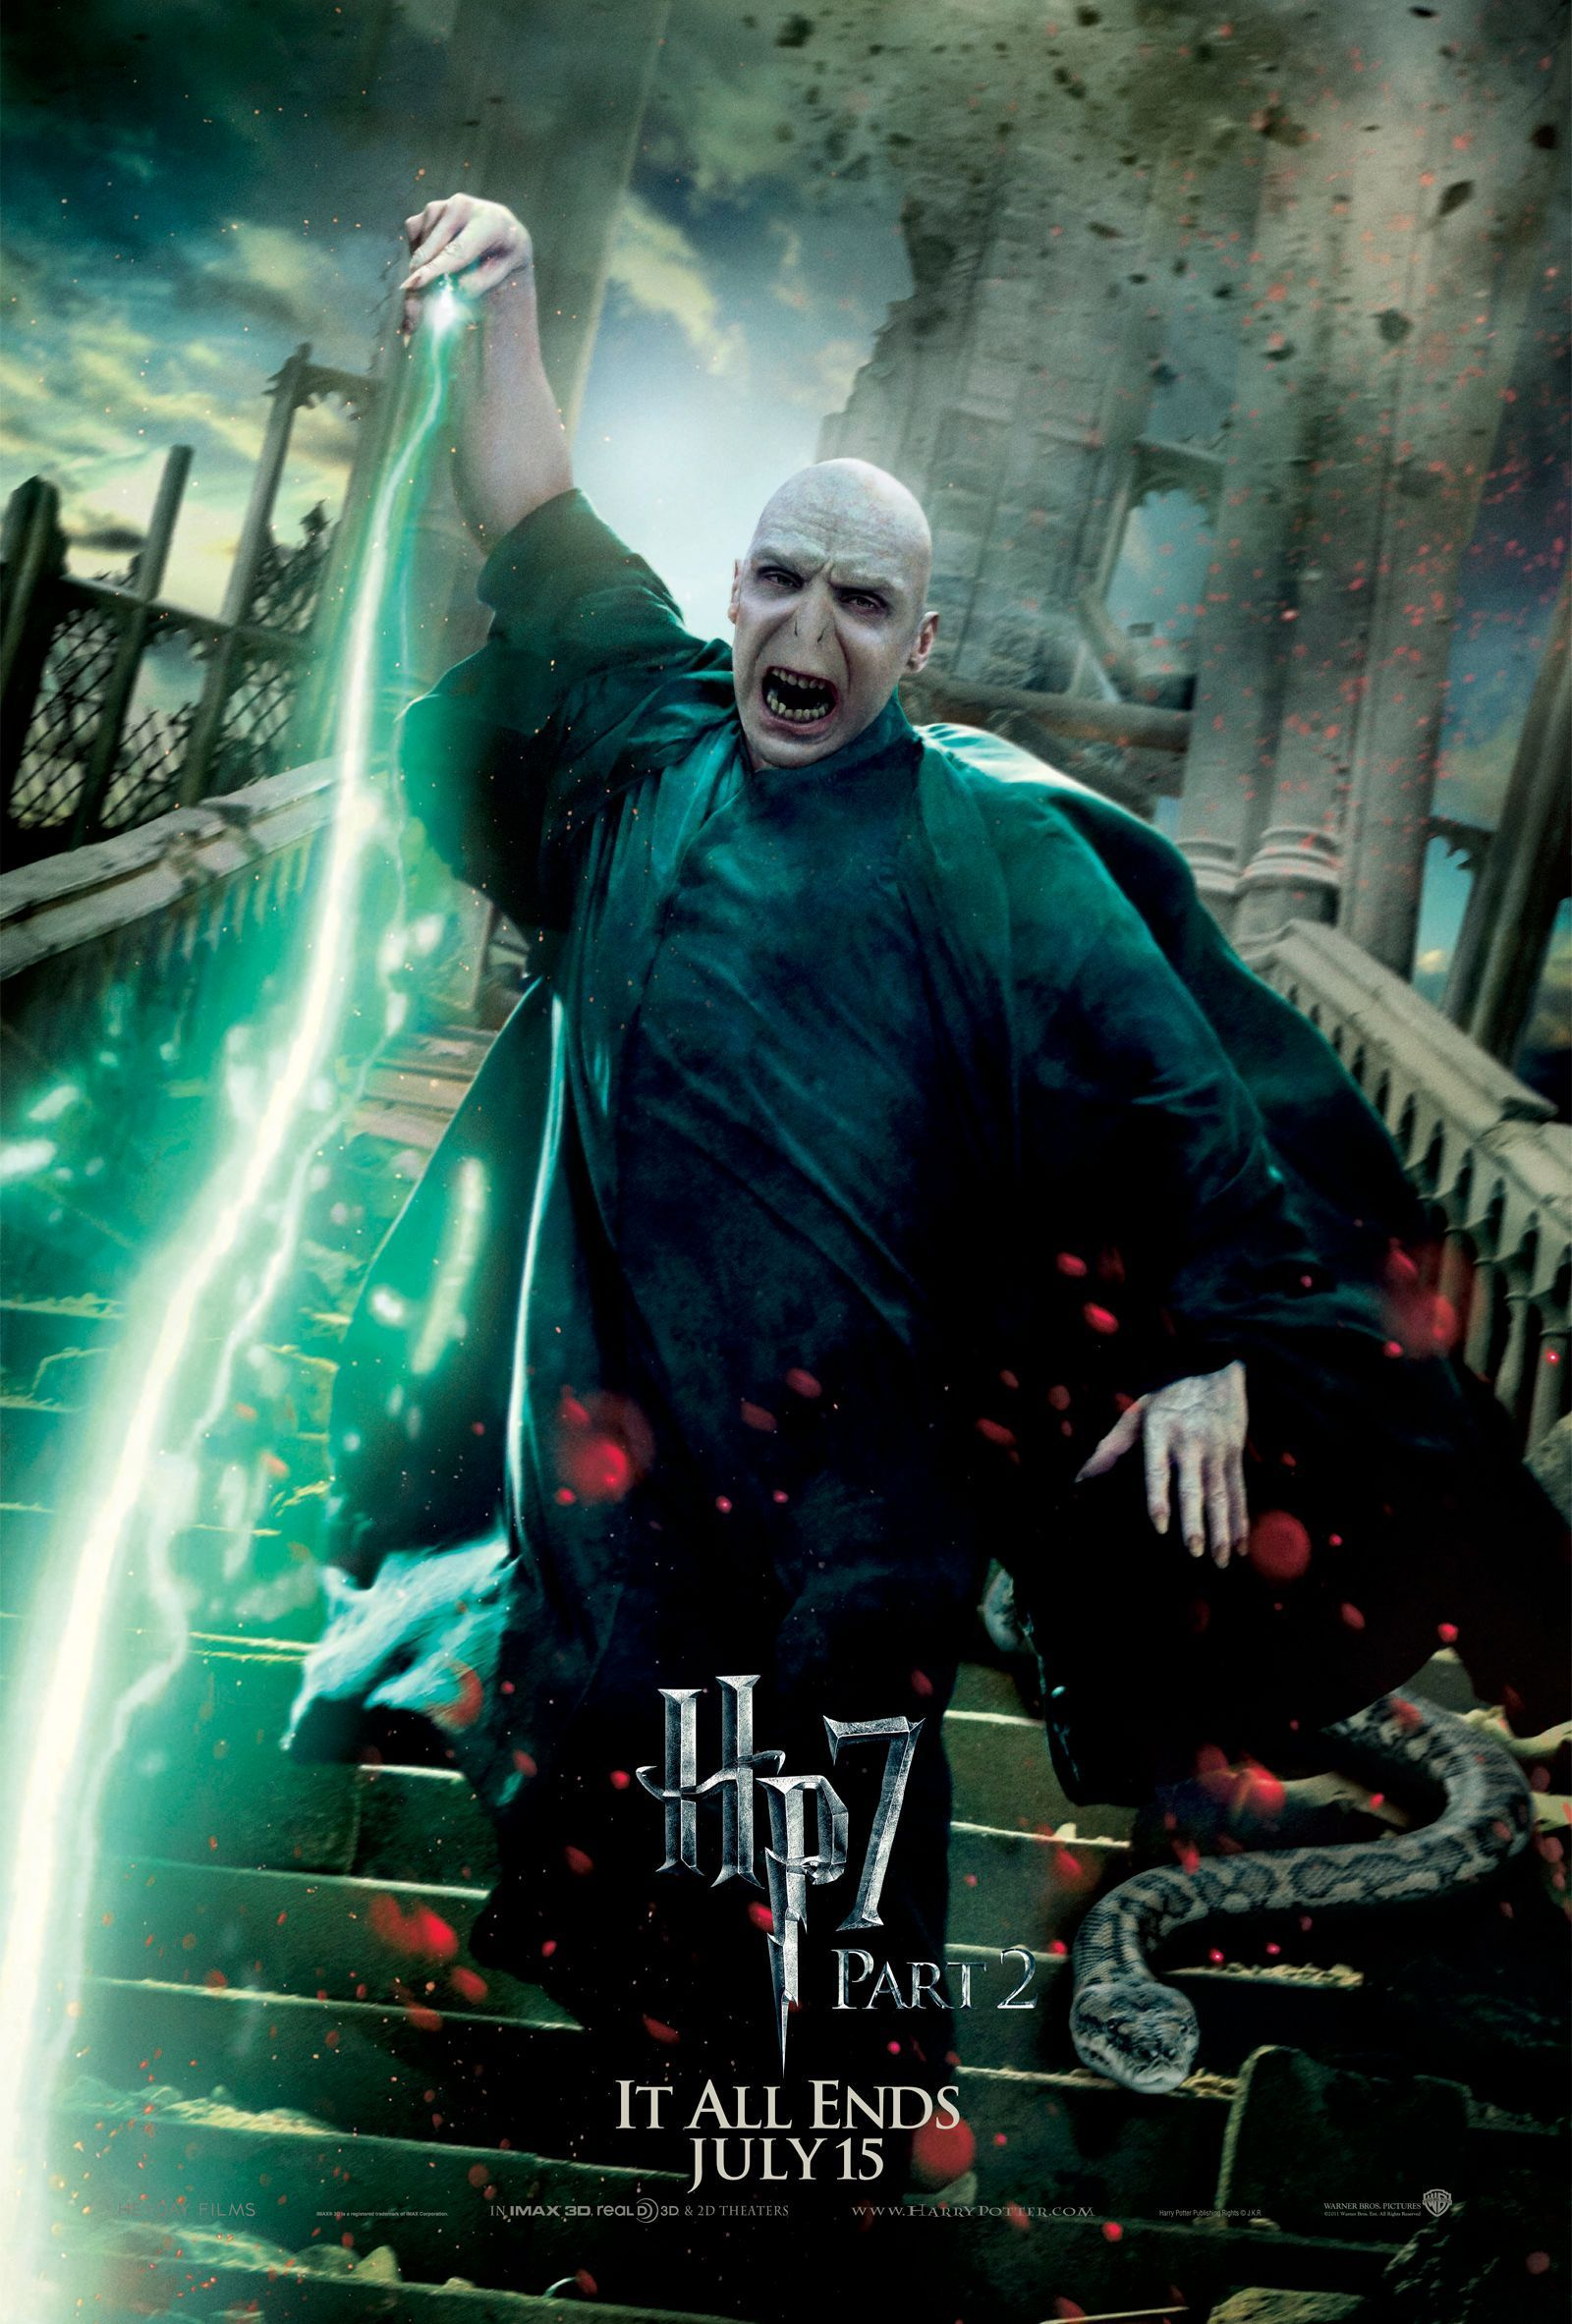 Deathly Hallows Part 2 Action Poster: Lord Voldemort [HQ]